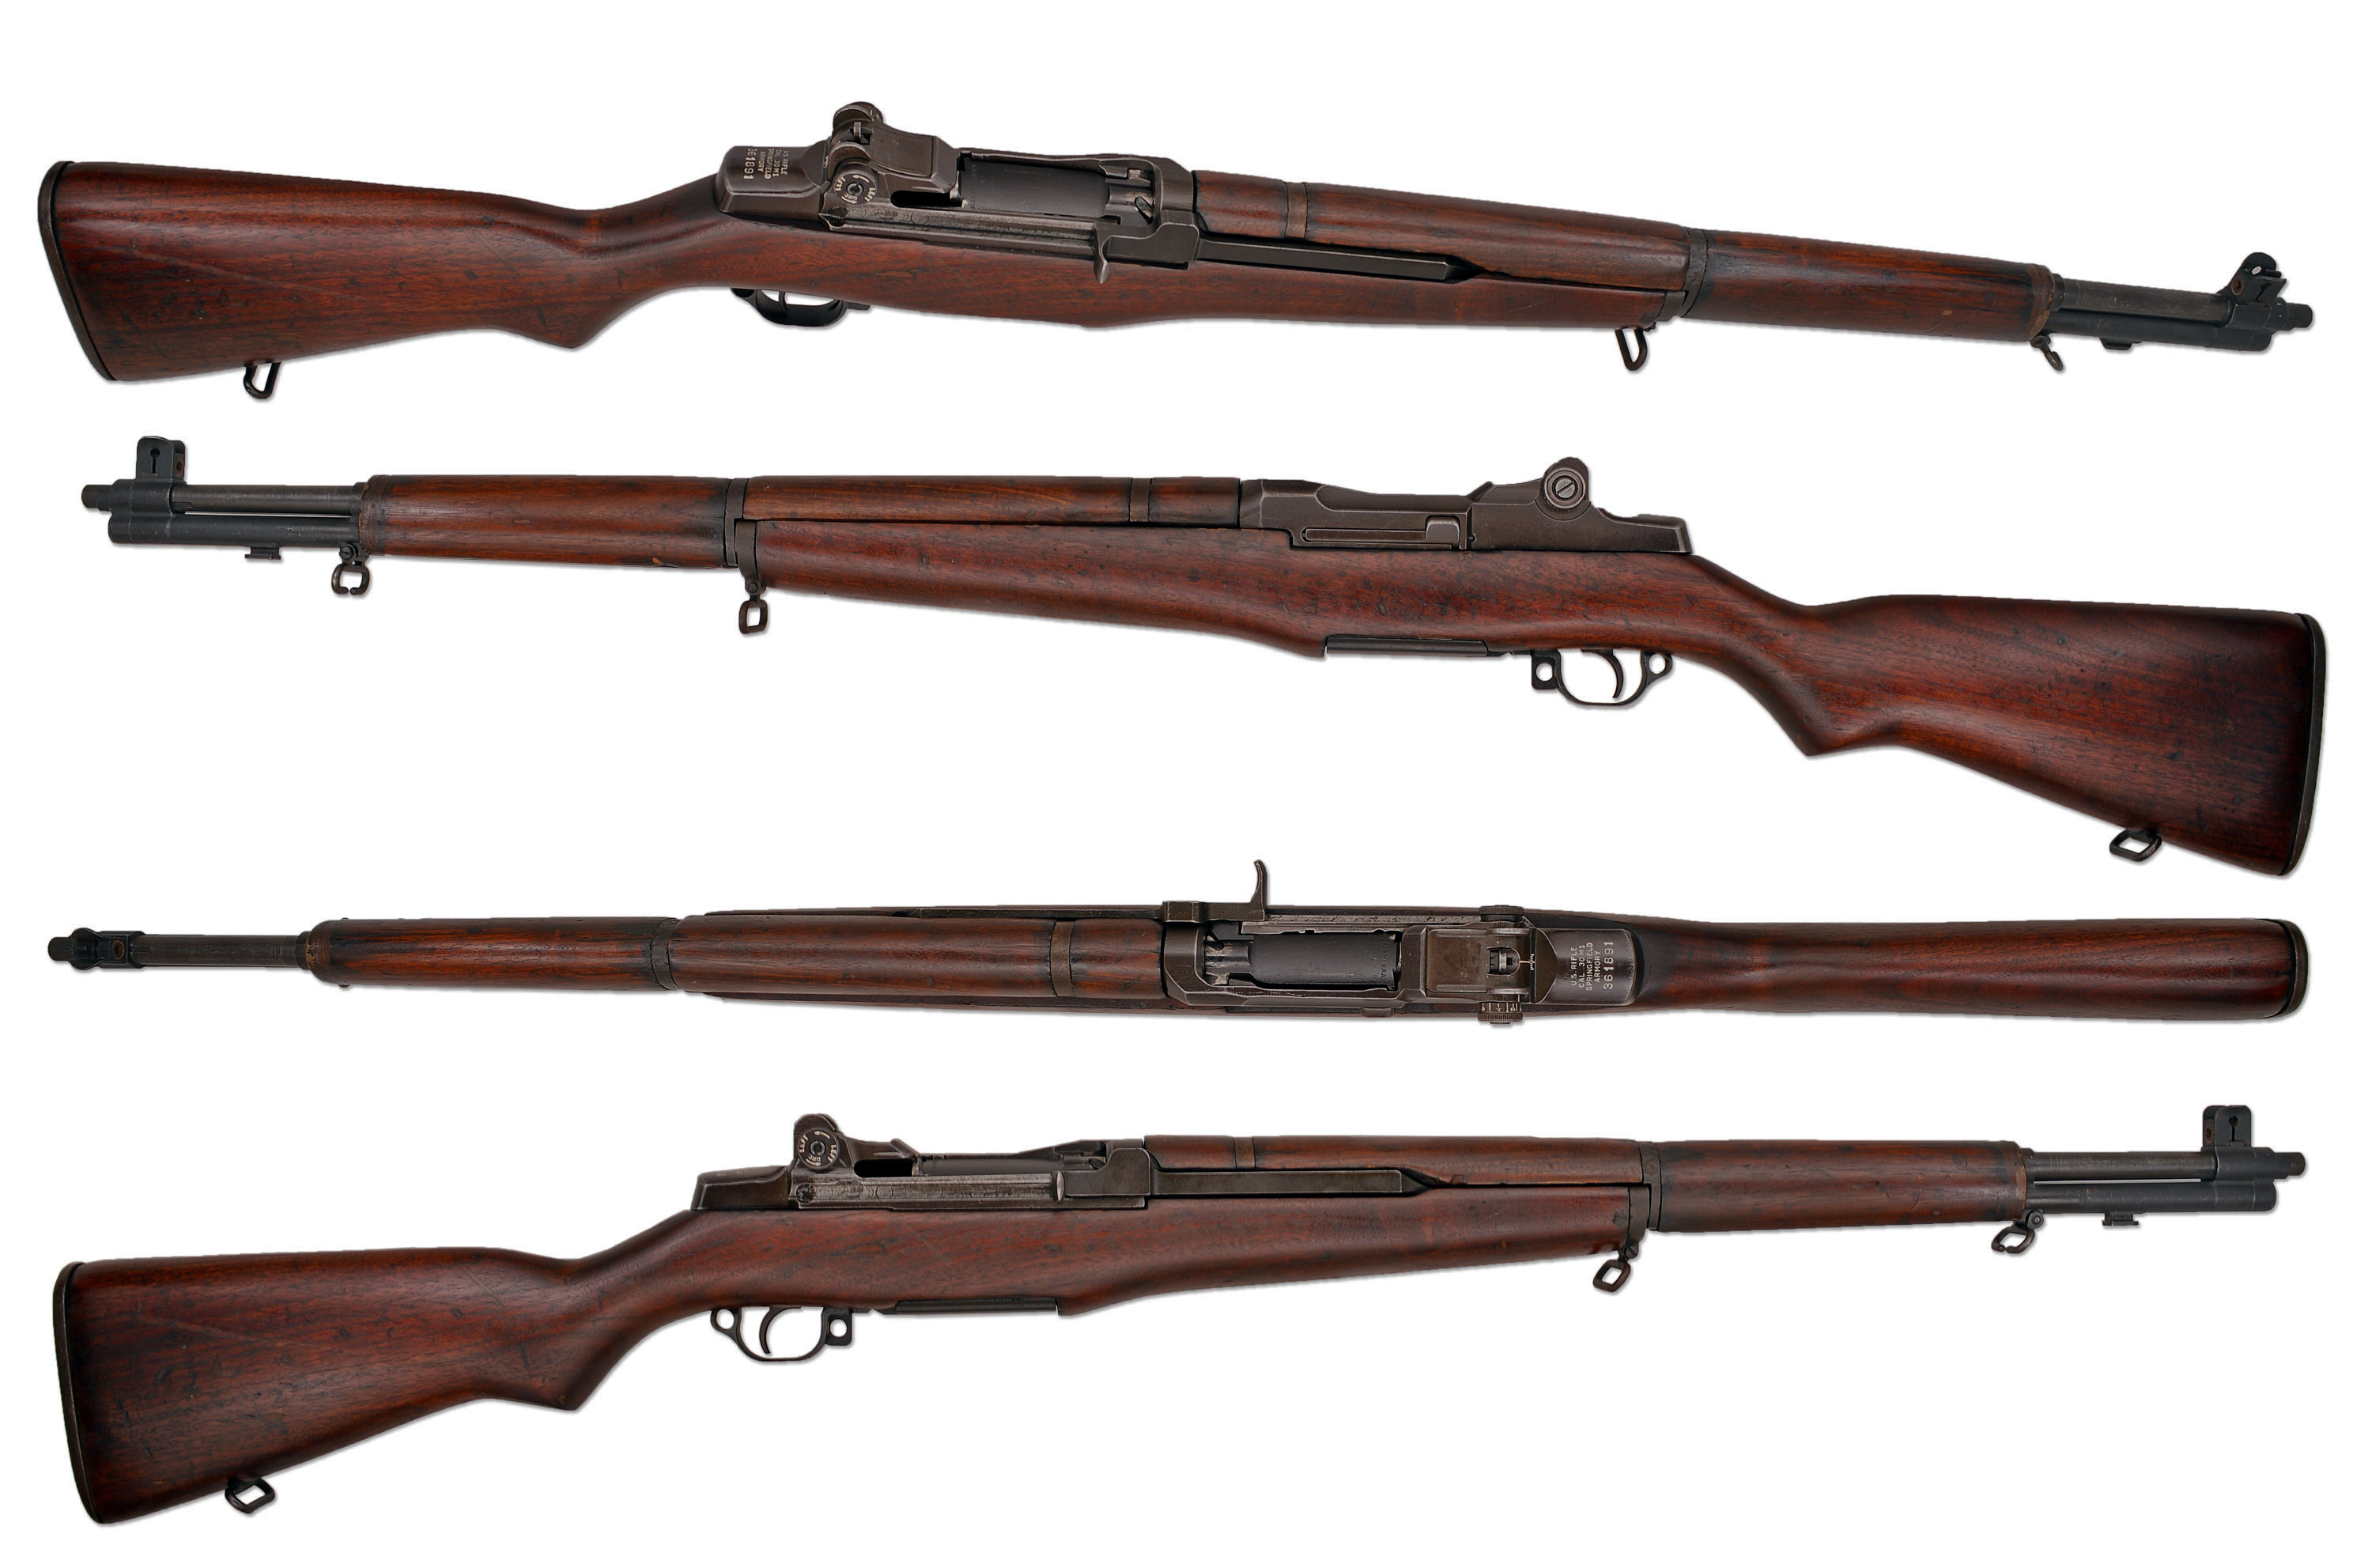 m1 rifle diagram rs232 to rs485 wiring purchase refurbished and garand  guy